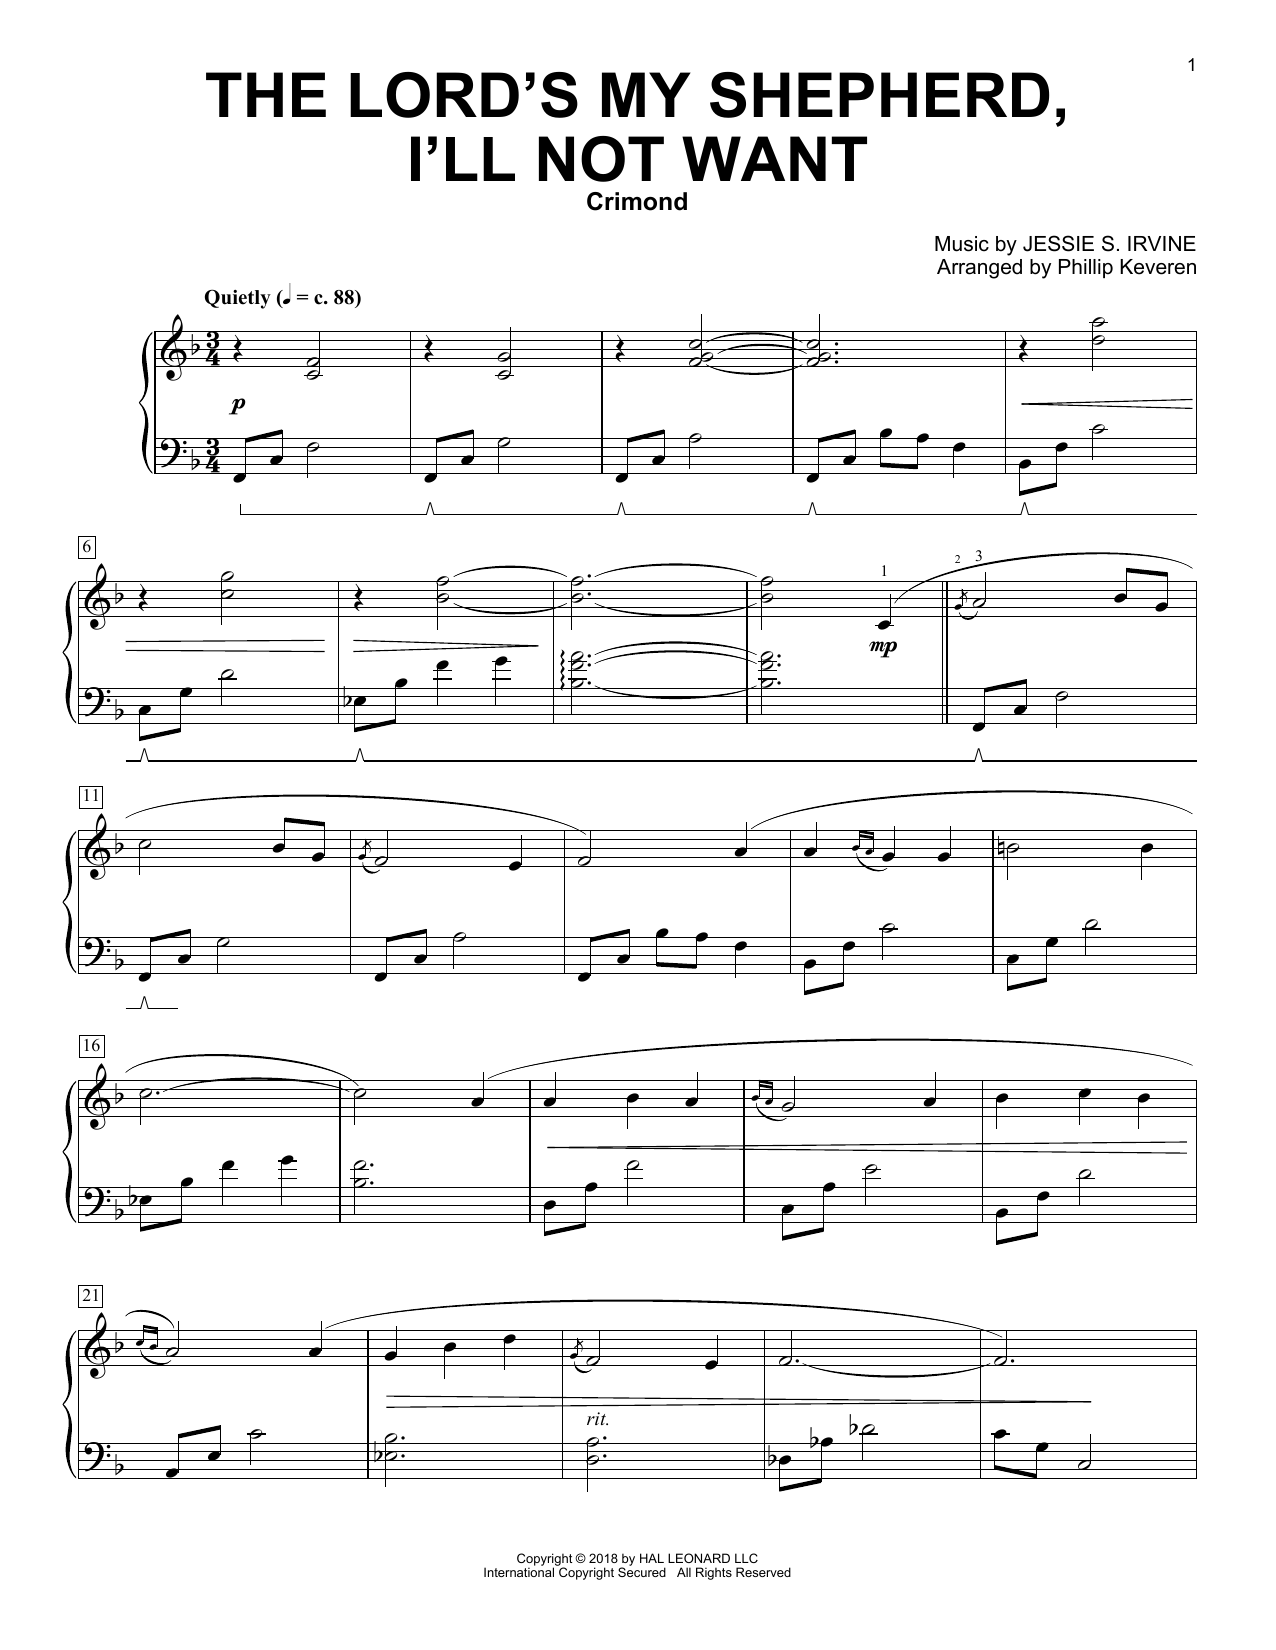 Scottish Psalter The Lord S My Shepherd I Ll Not Want Arr Phillip Keveren Sheet Music Pdf Notes Chords Sacred Score Piano Solo Download Printable Sku 254937